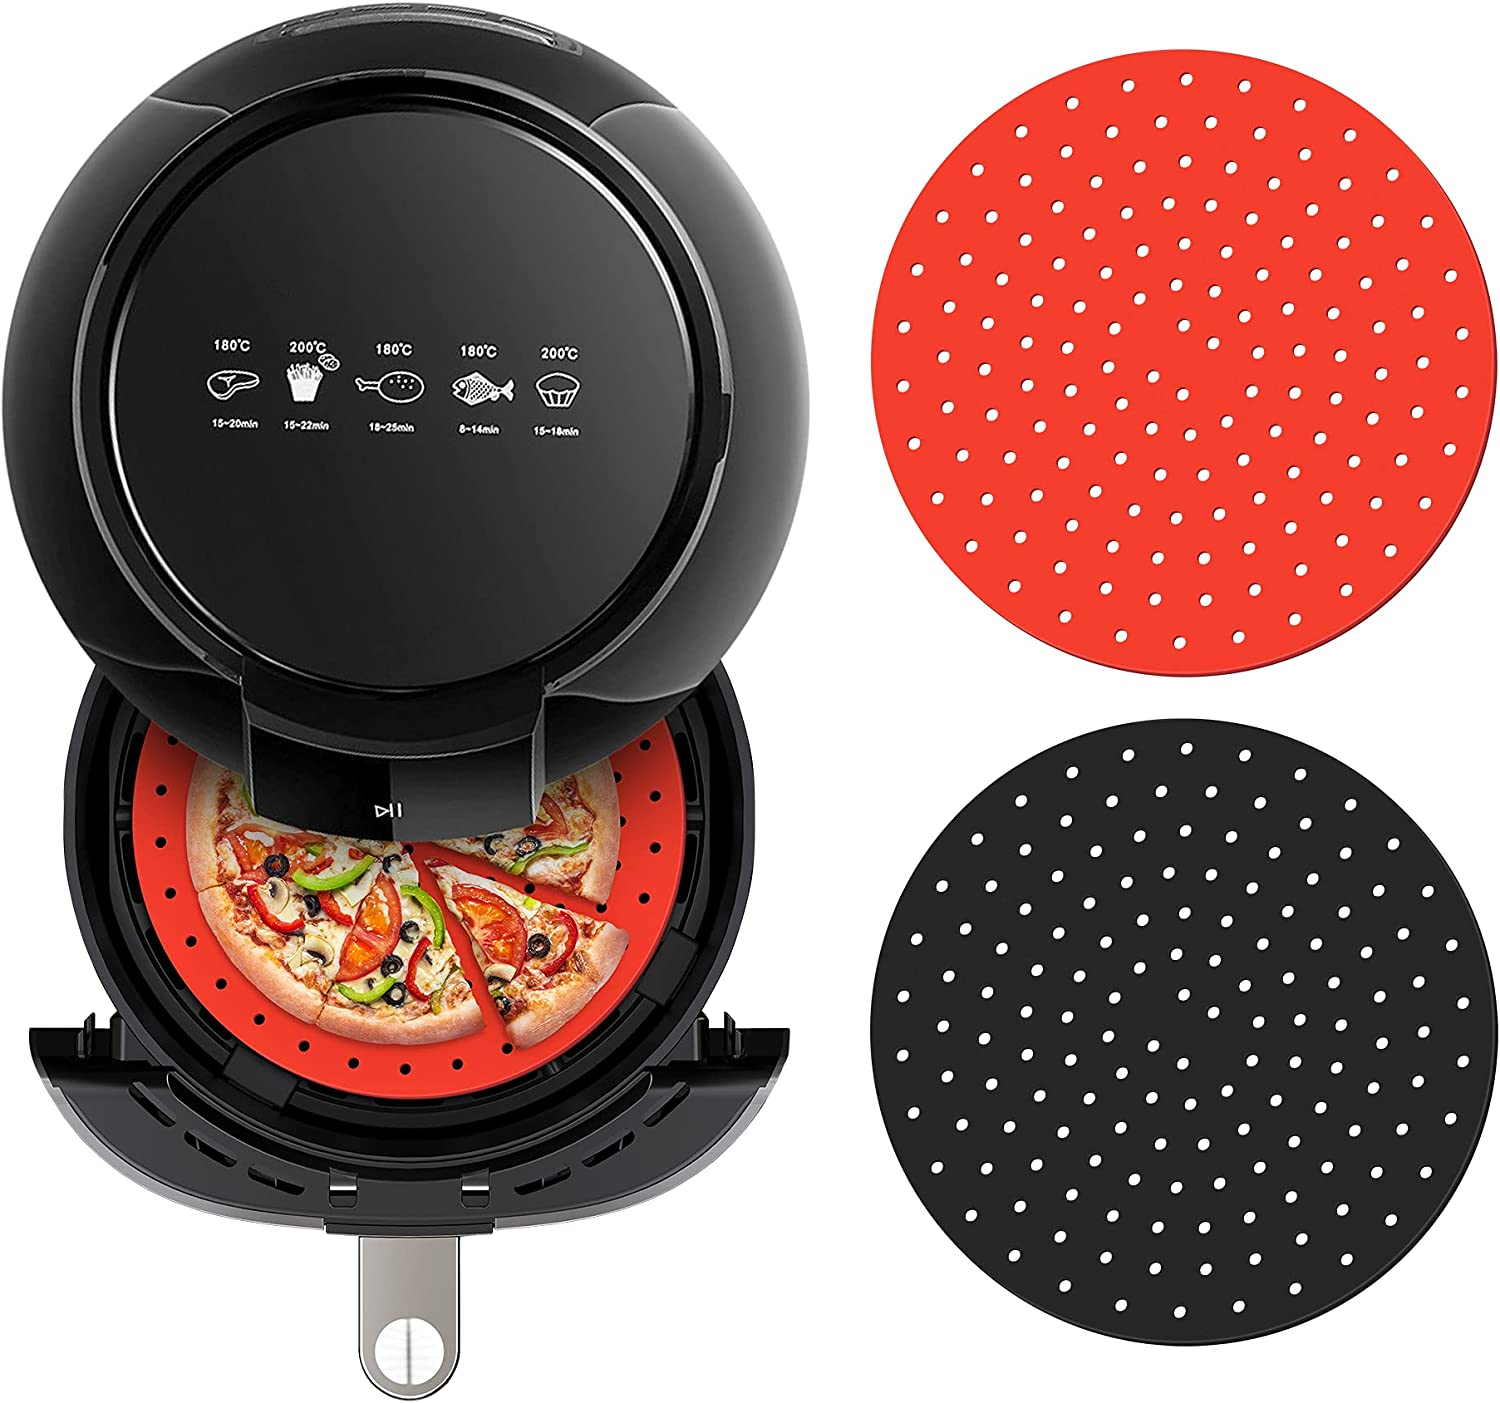 LIDSTOBALL Reusable Air Fryer Liners - 9 inch Round Non-Stick Silicone Air Fryer Mats - Air Fryer Accessories for Gourmia, Ninja, Cosori, Instant Vortex, Power XL and More (2 Packs)